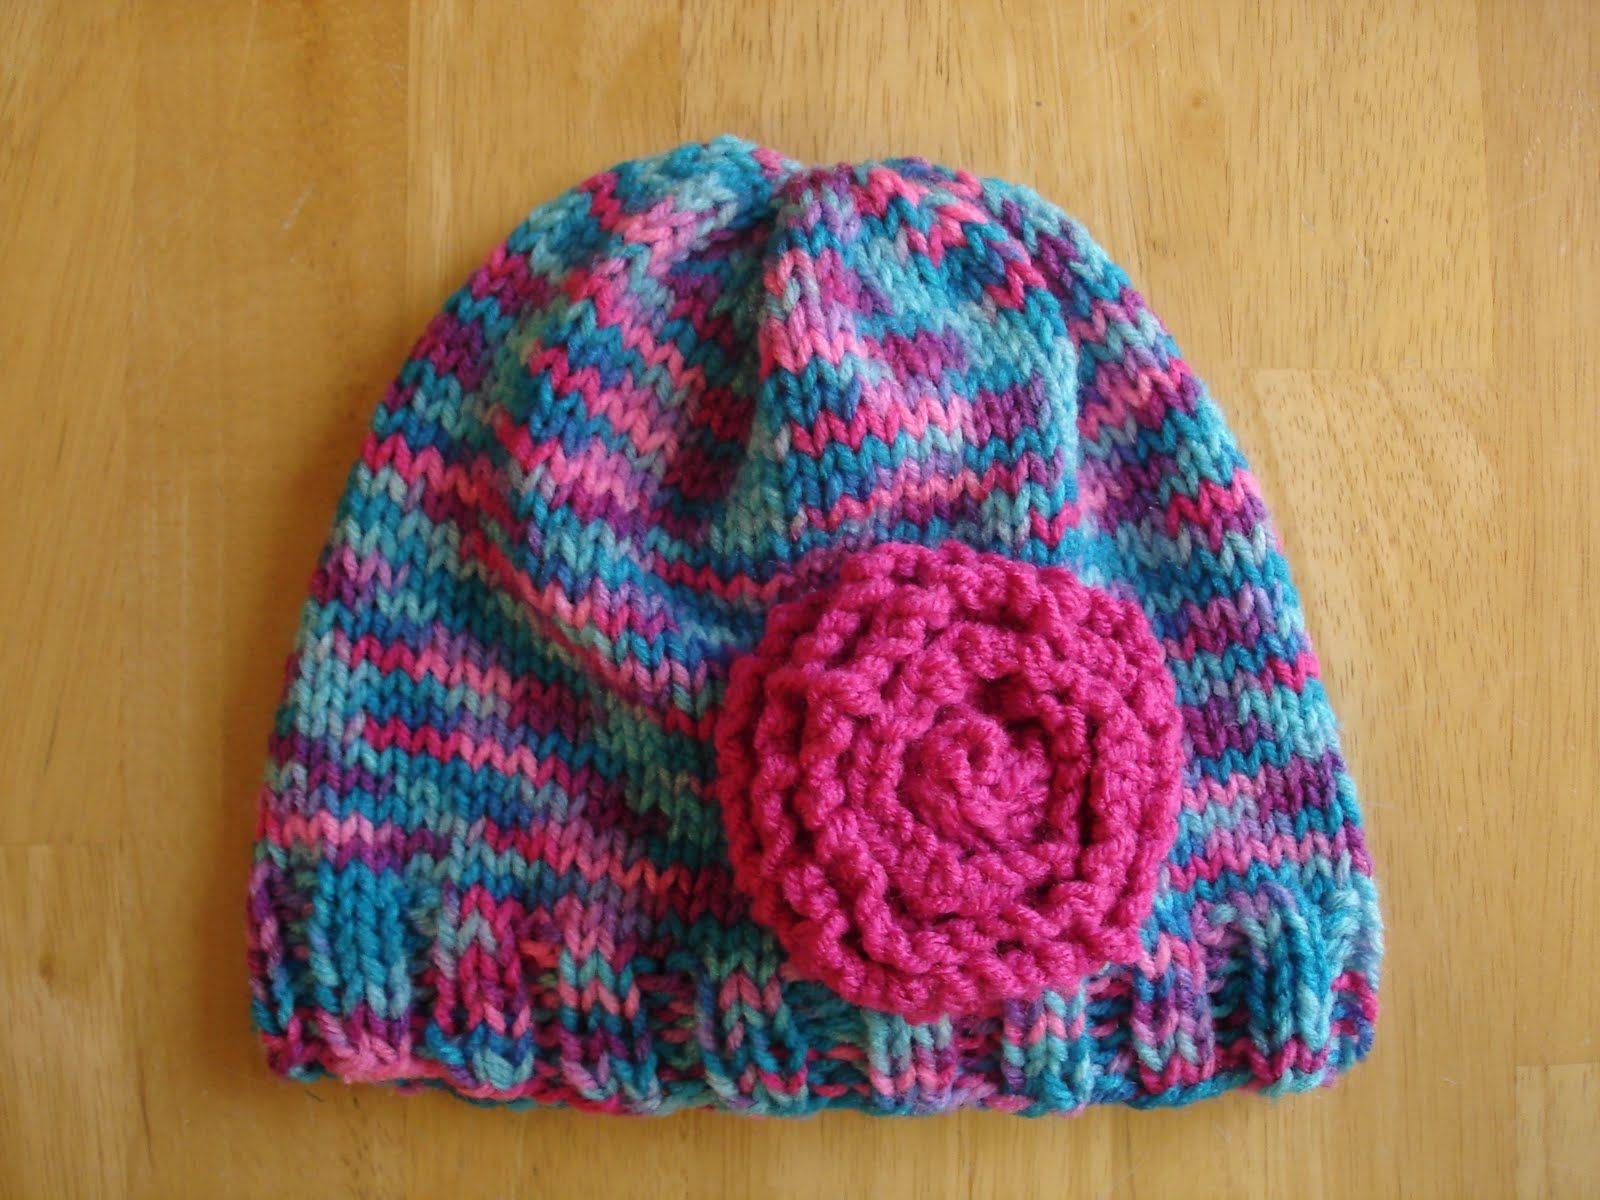 knitted+hat+patterns+for+free   Free Knitting Pattern...Very Violet ...